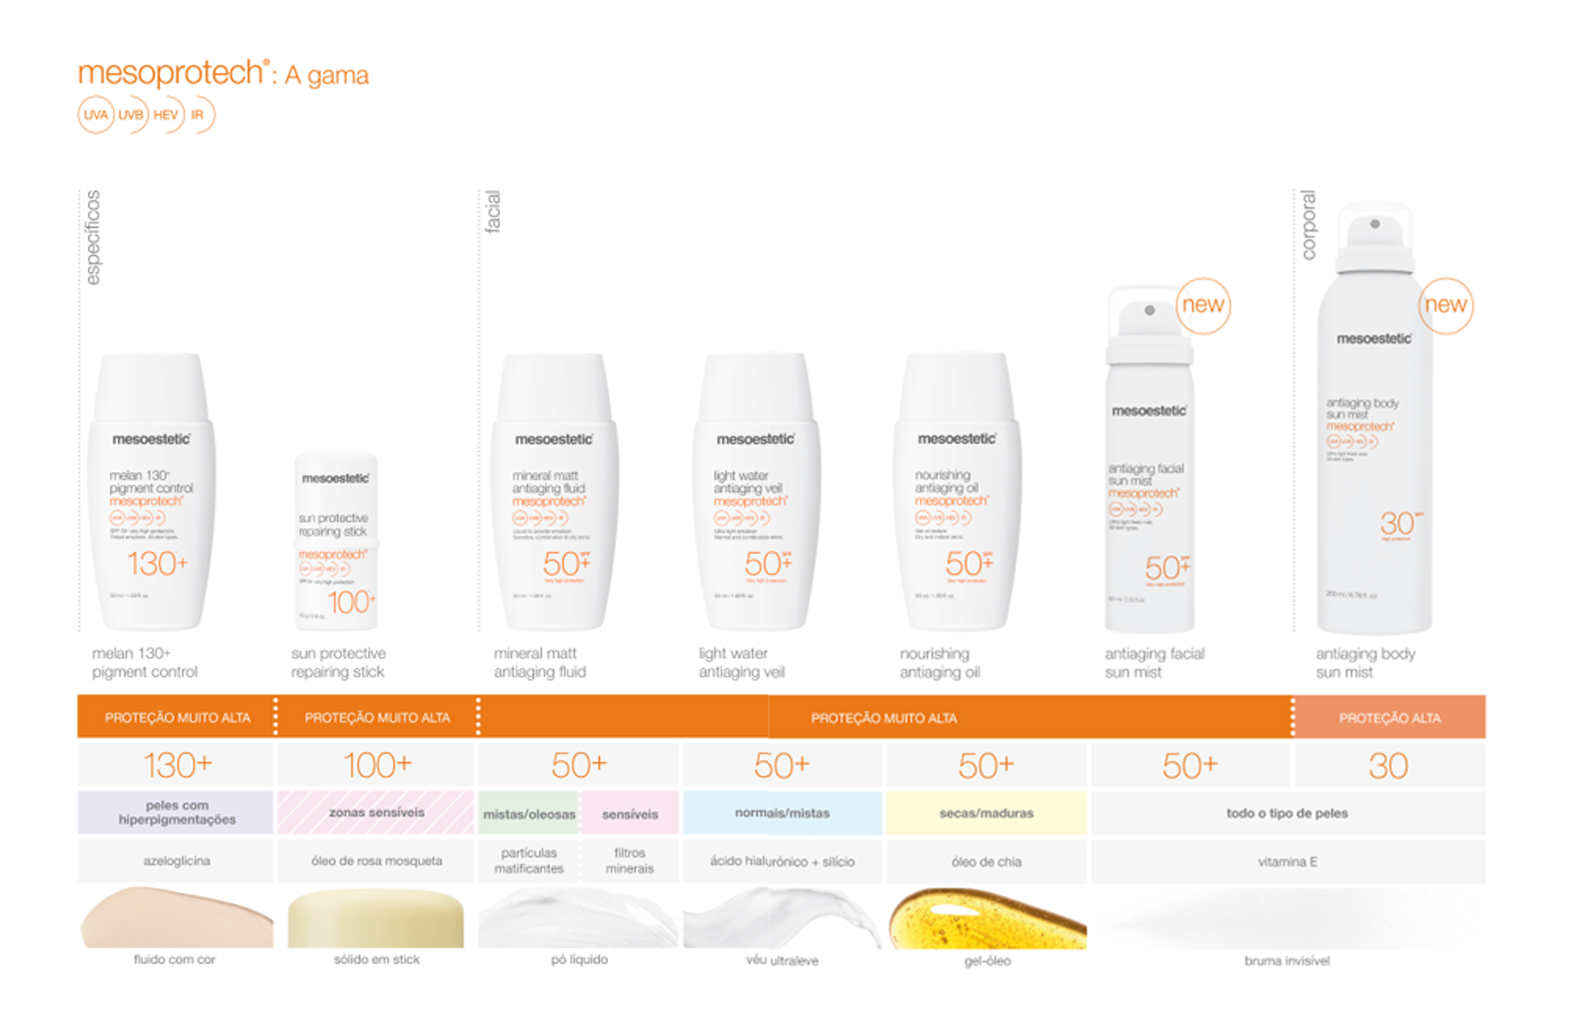 gama-mesoprotech-mesoestetic-protectores-solares